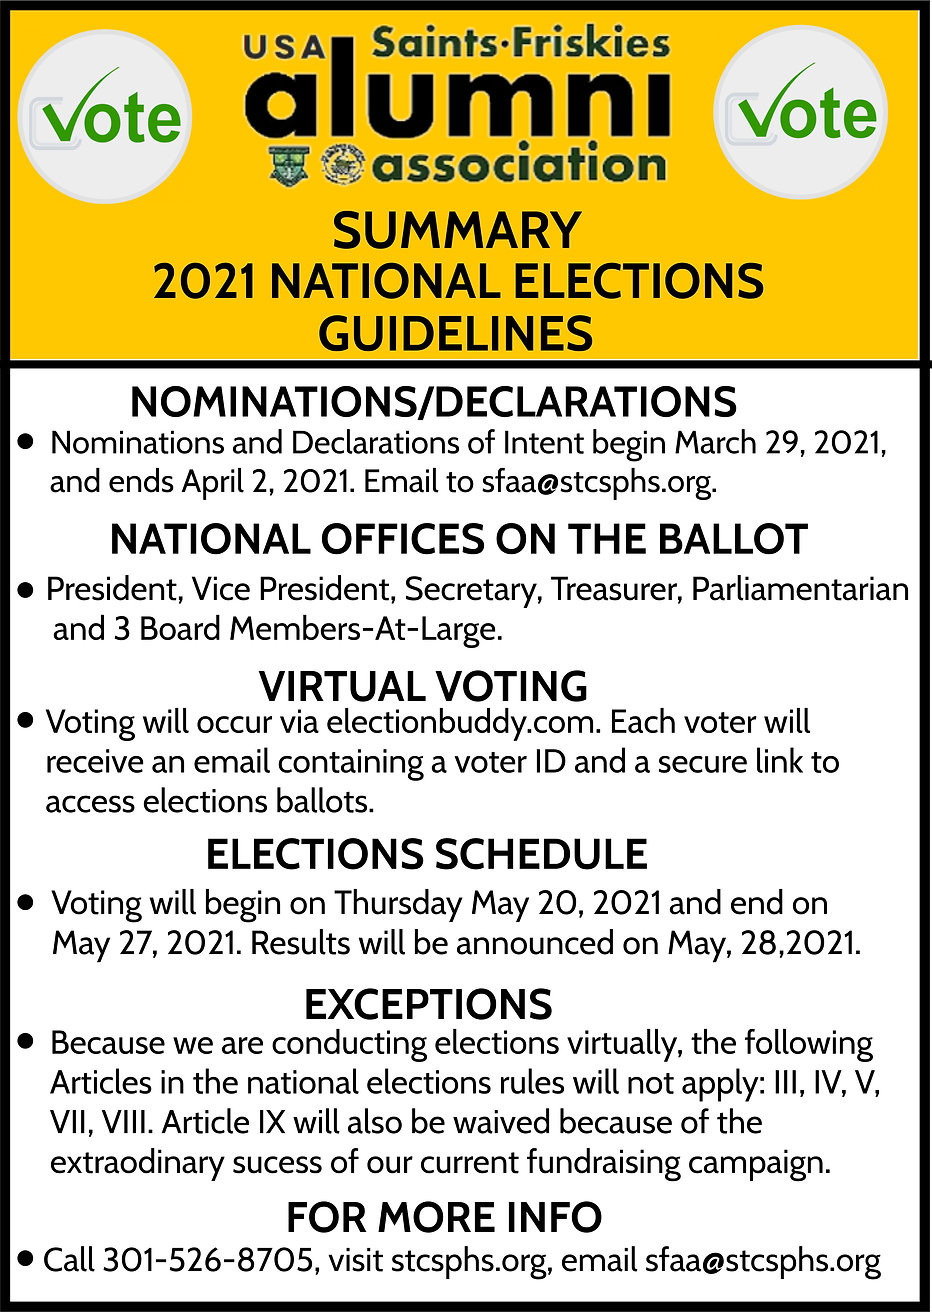 2021 NATIONAL ELECTIONS GUIDELINES 29MAR